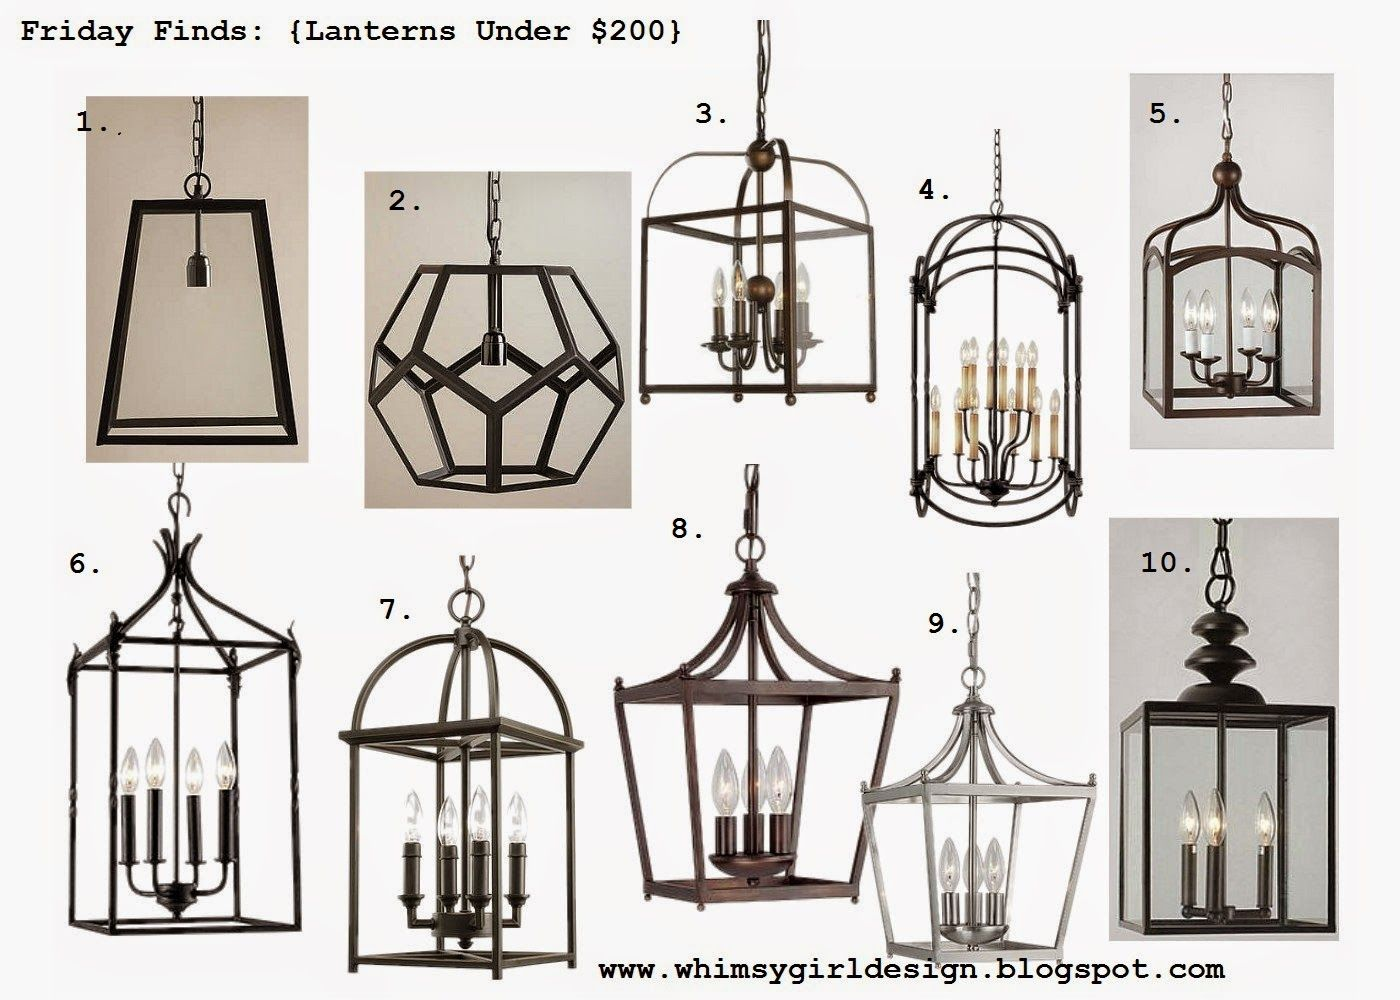 Whimsy girl friday finds lanterns under 200 for the home lantern chandelier arubaitofo Choice Image